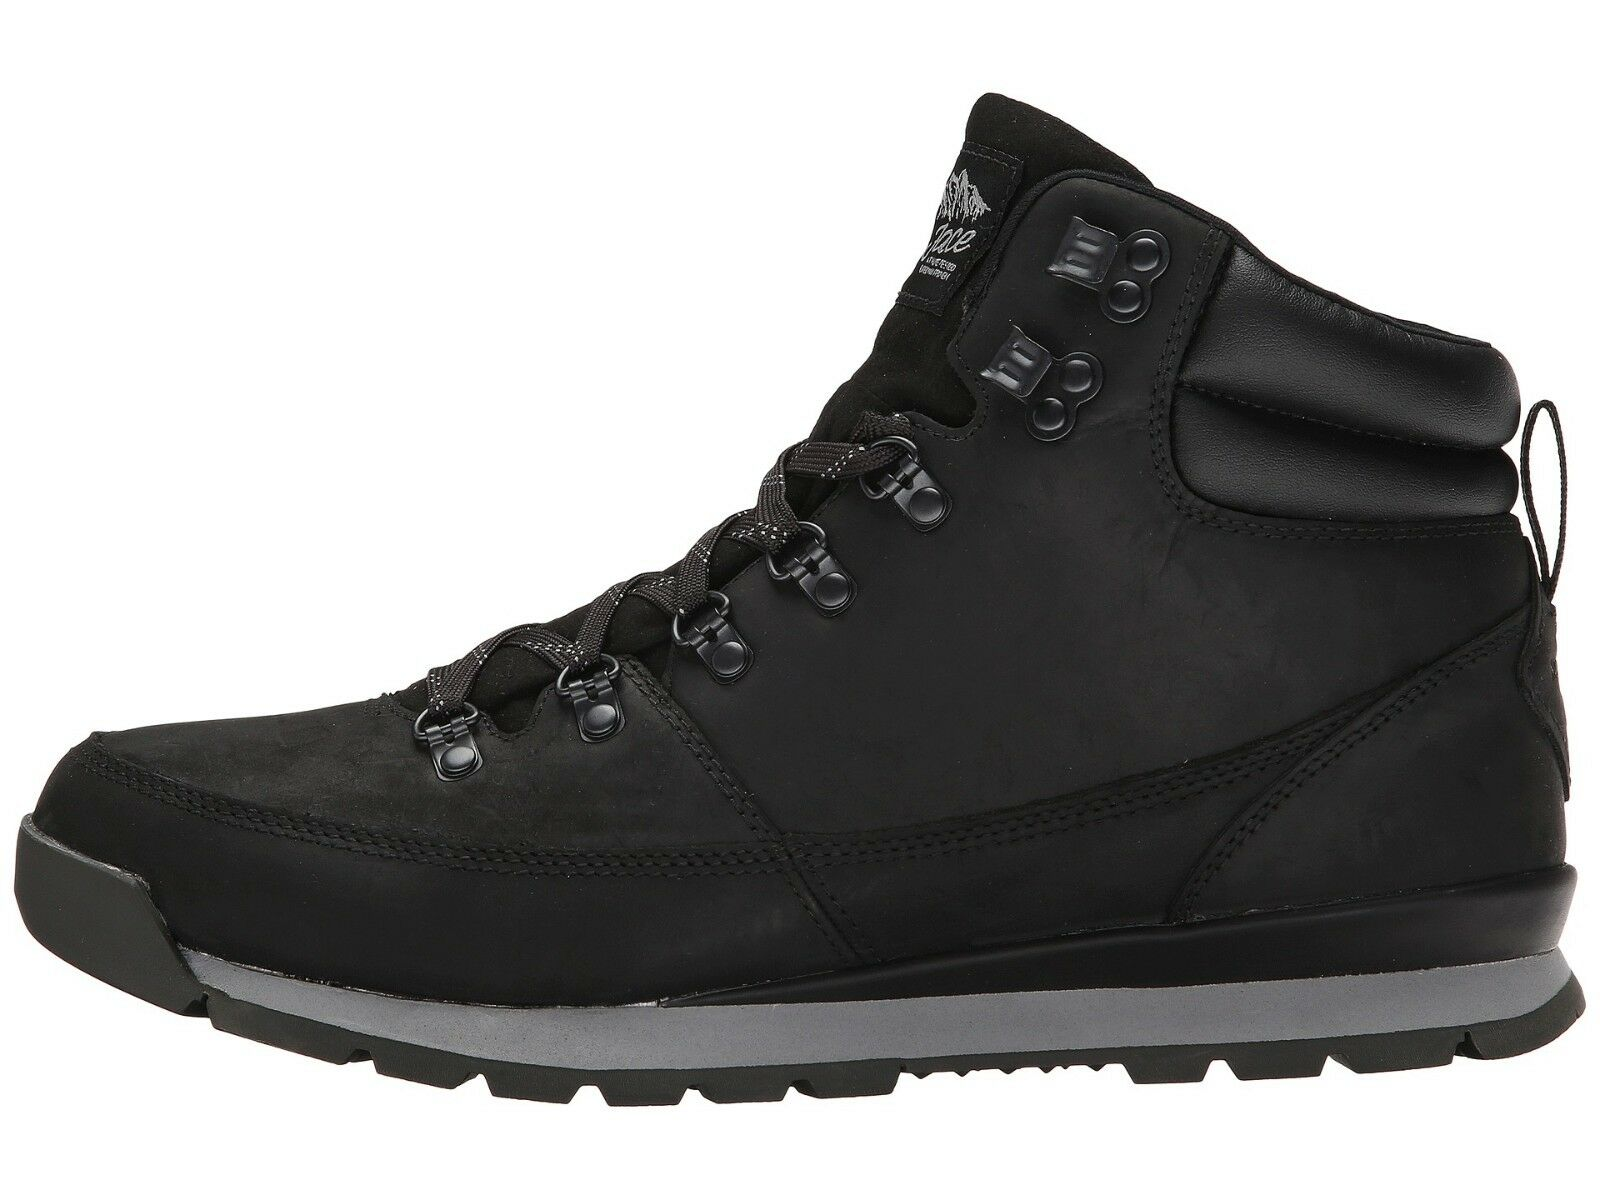 New THE NORTH FACE Back-To-Berkeley Redux Leather Trans Boots - Men's Size 10